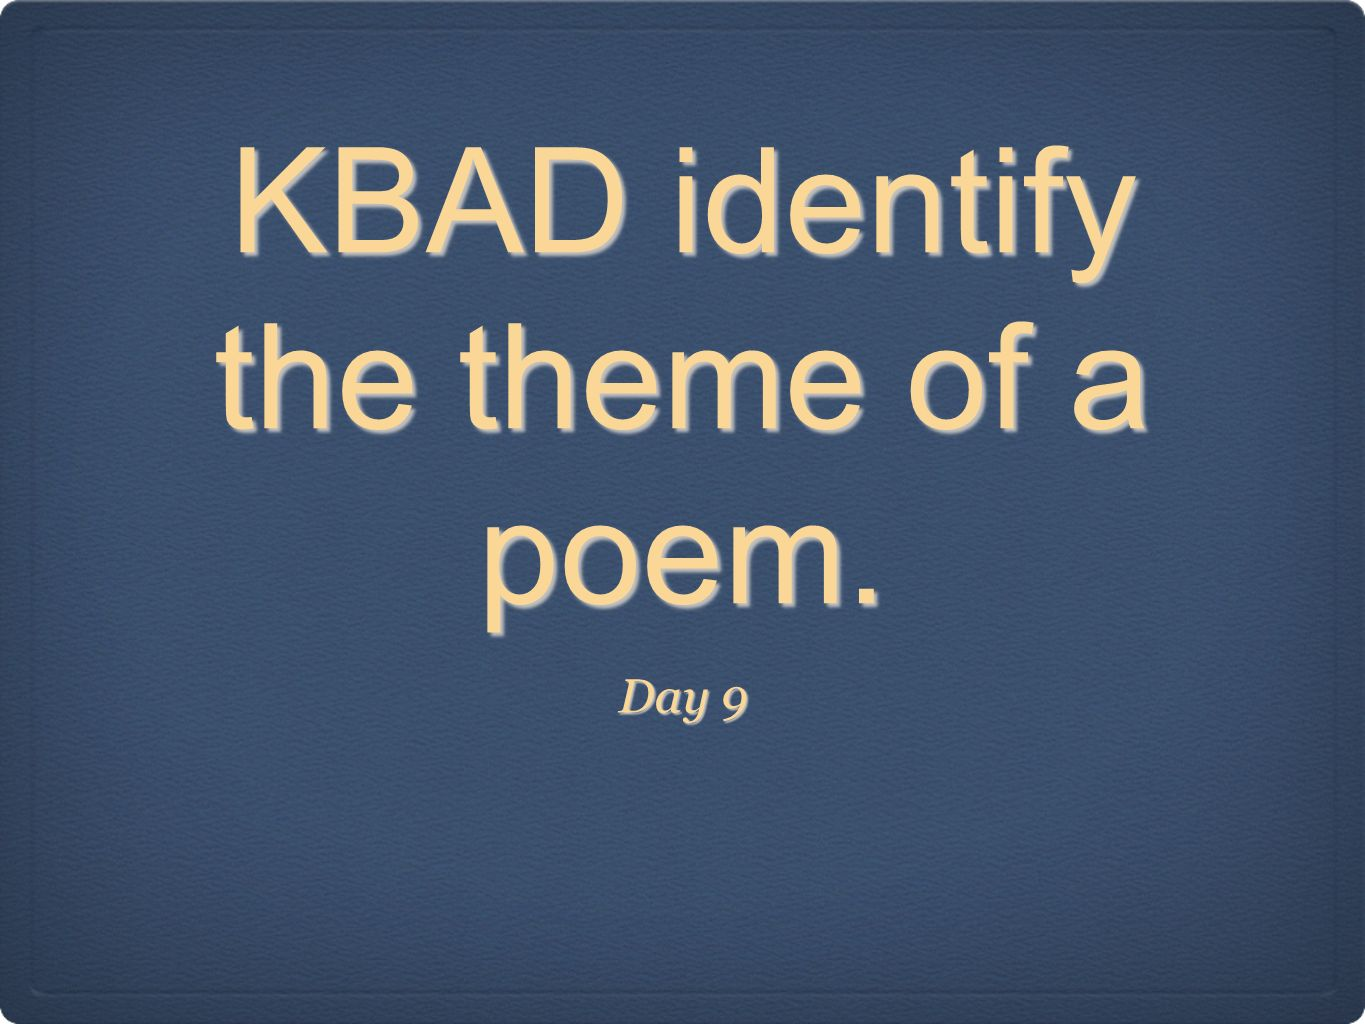 KBAD identify the theme of a poem. Day 9